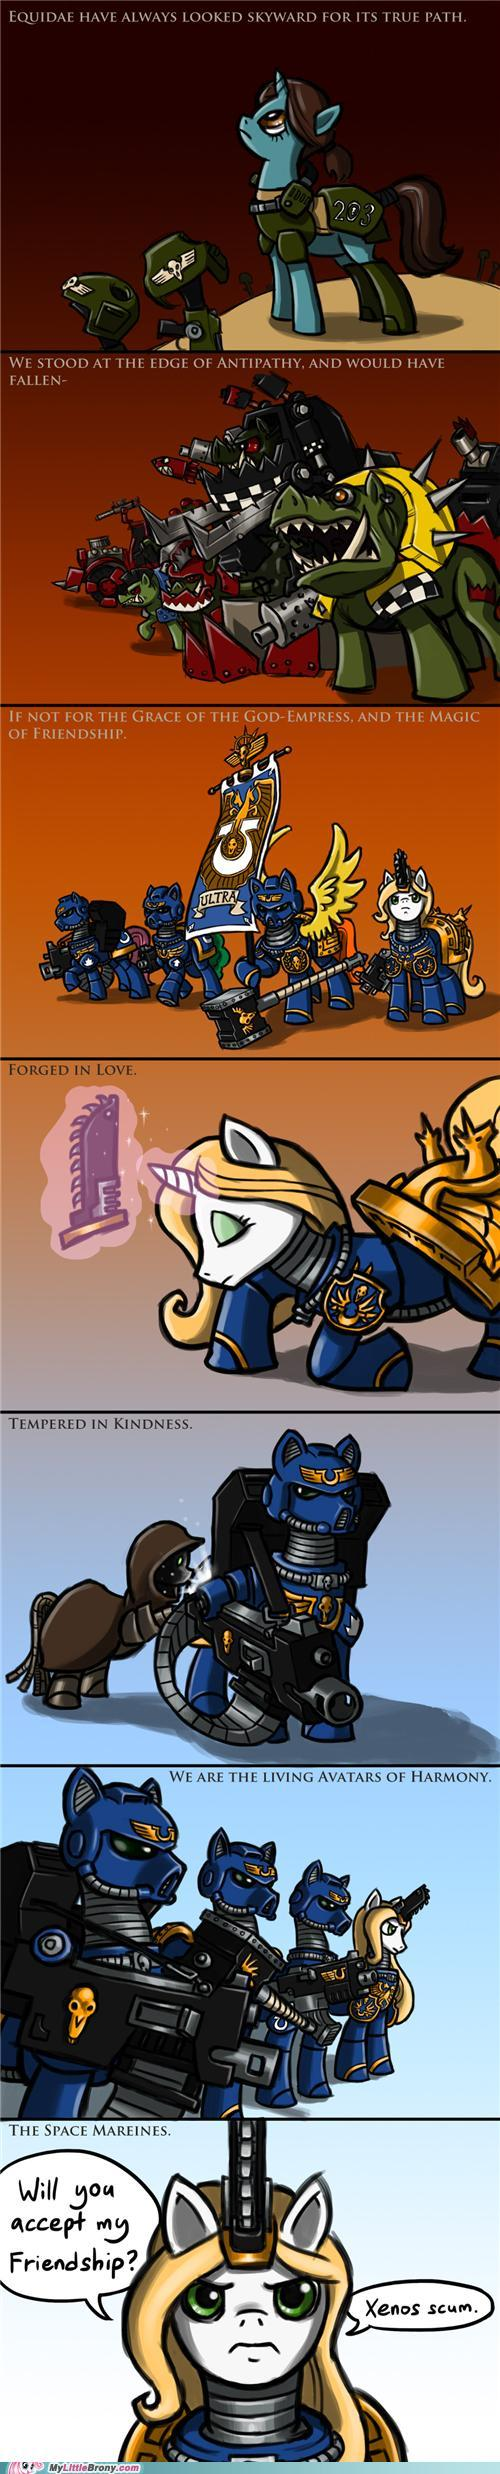 Humour 40K - Page 2 My-little-pony-friendship-is-magic-brony-space-mareine